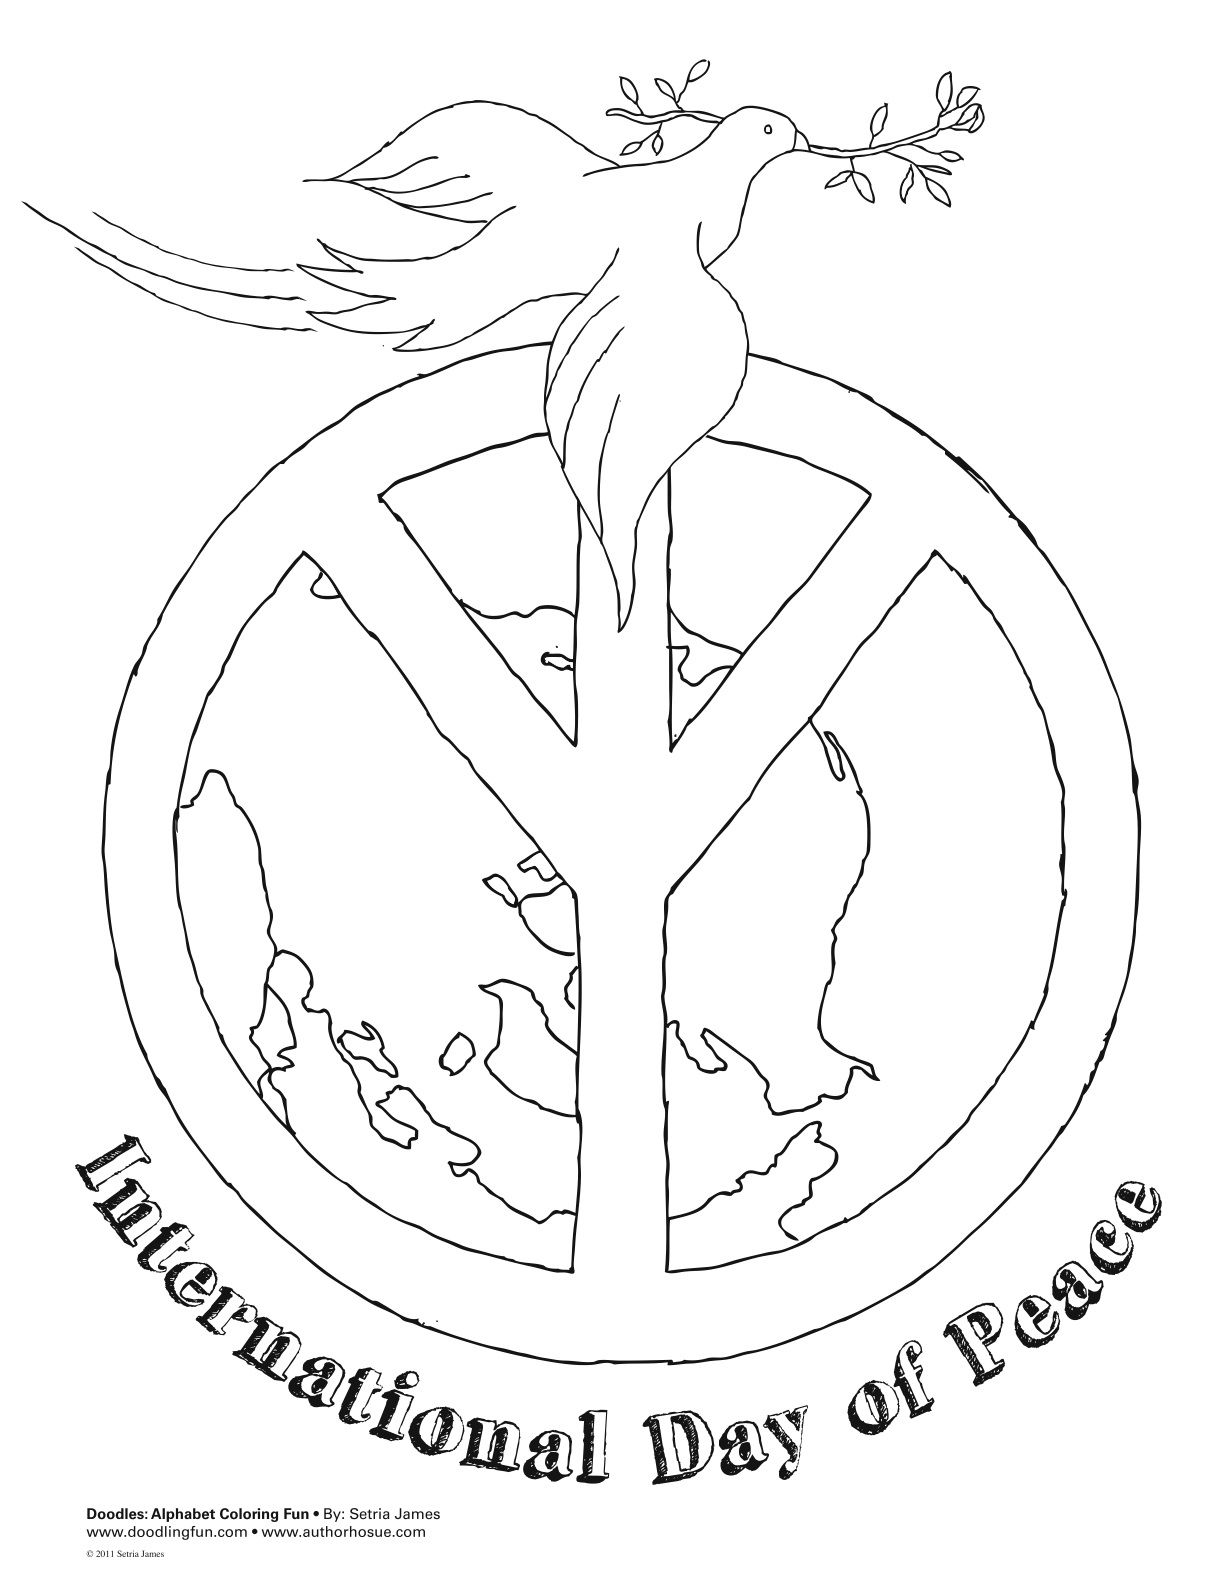 international peace day coloring page